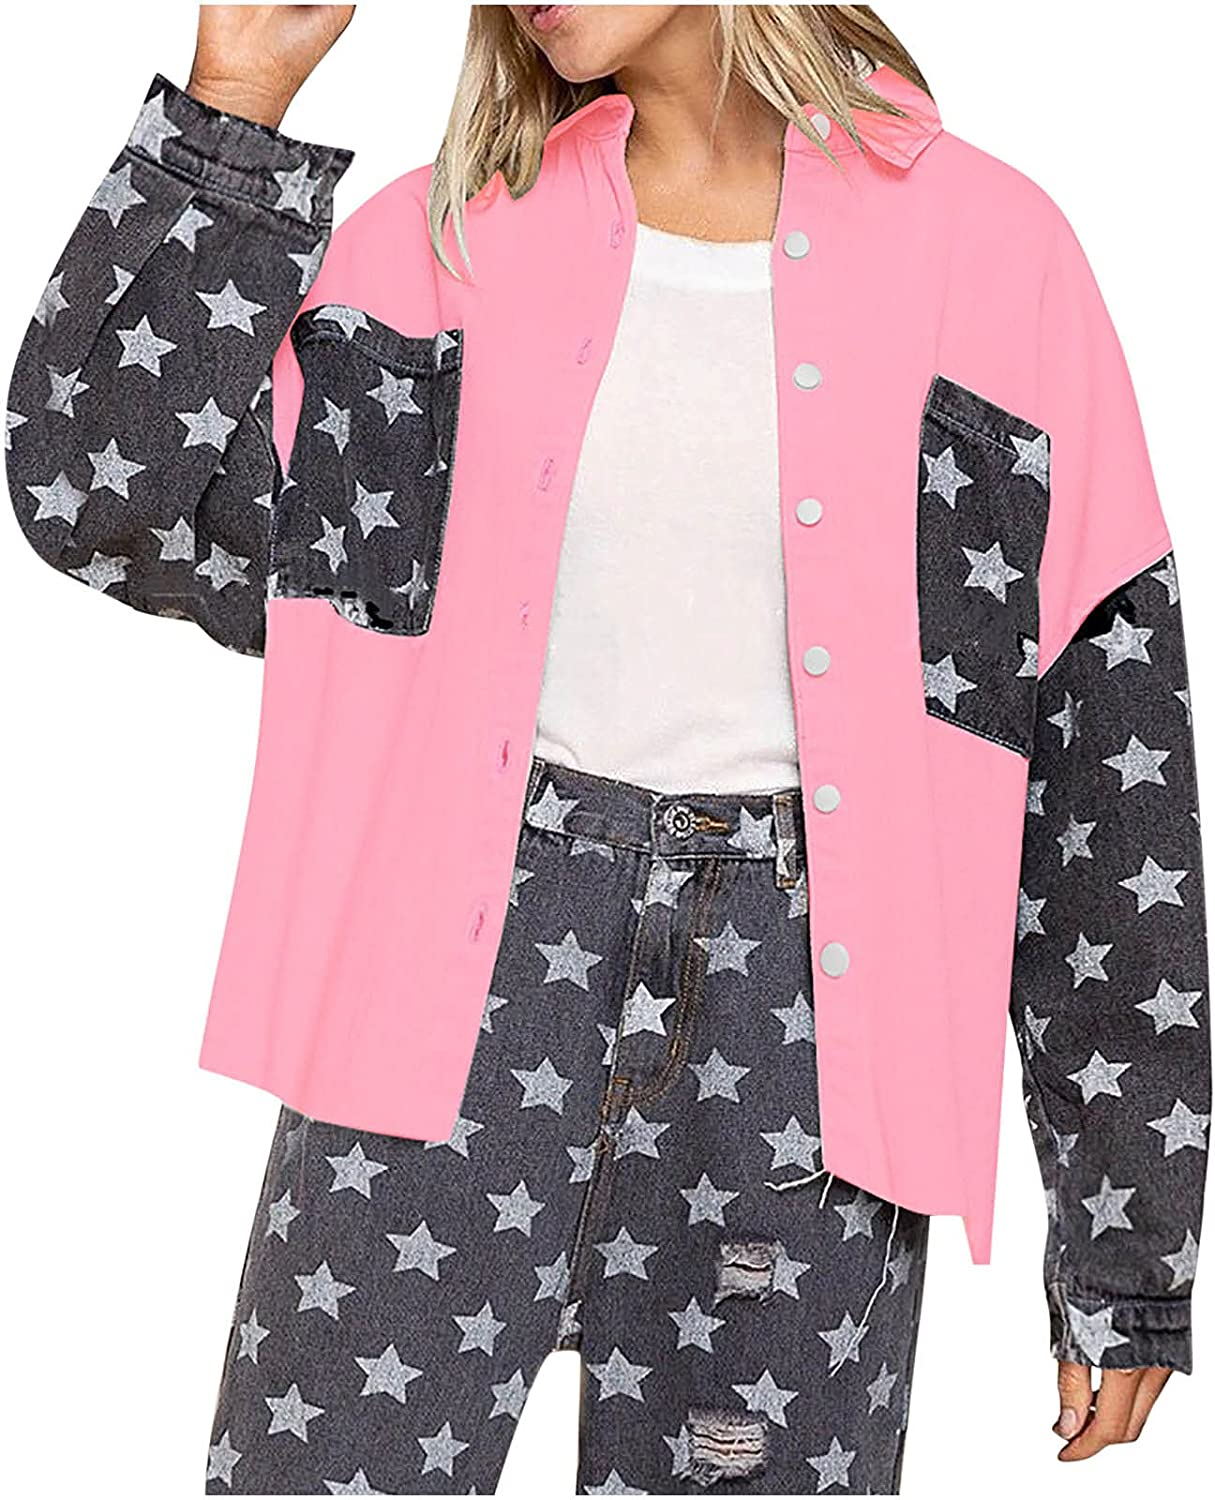 Star Print Jacket Women Button Down Lapel Long Sleeve Open Front Outwear Fashion Loose Fall Coat Tops With Pockets